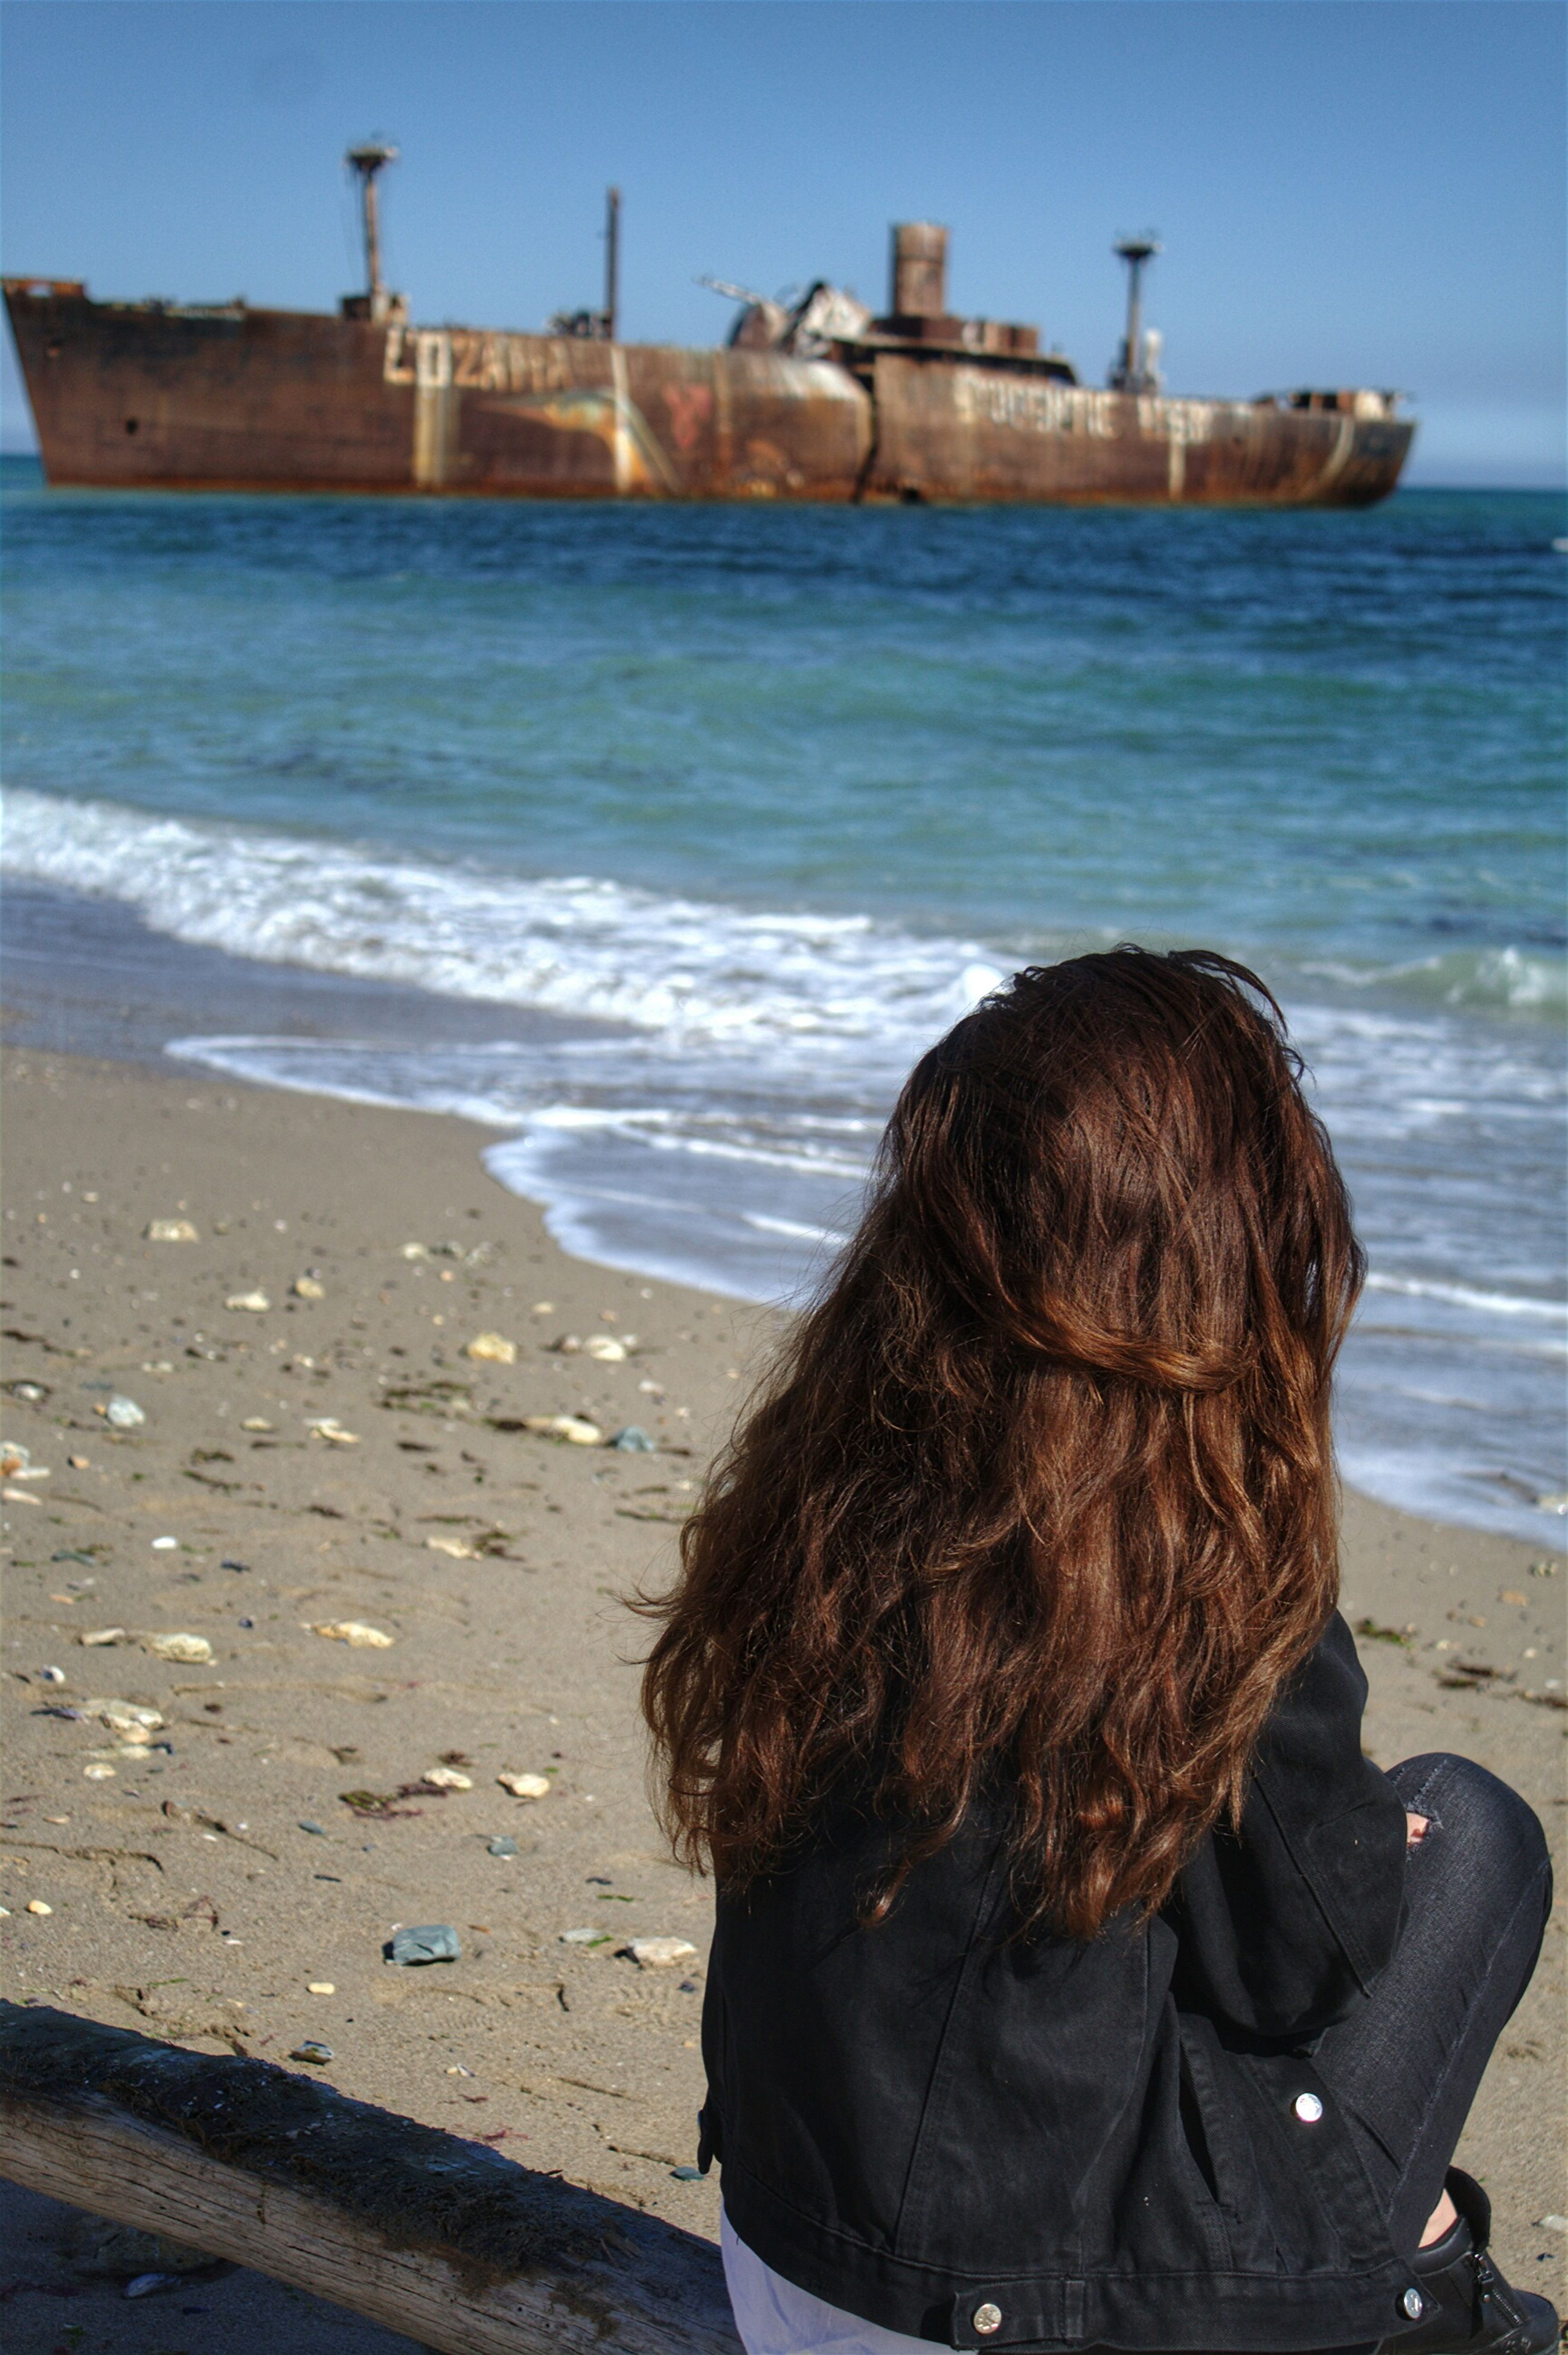 sea, long hair, beach, real people, water, one woman only, women, one person, day, wave, outdoors, close-up, only women, sky, people, adult, adults only